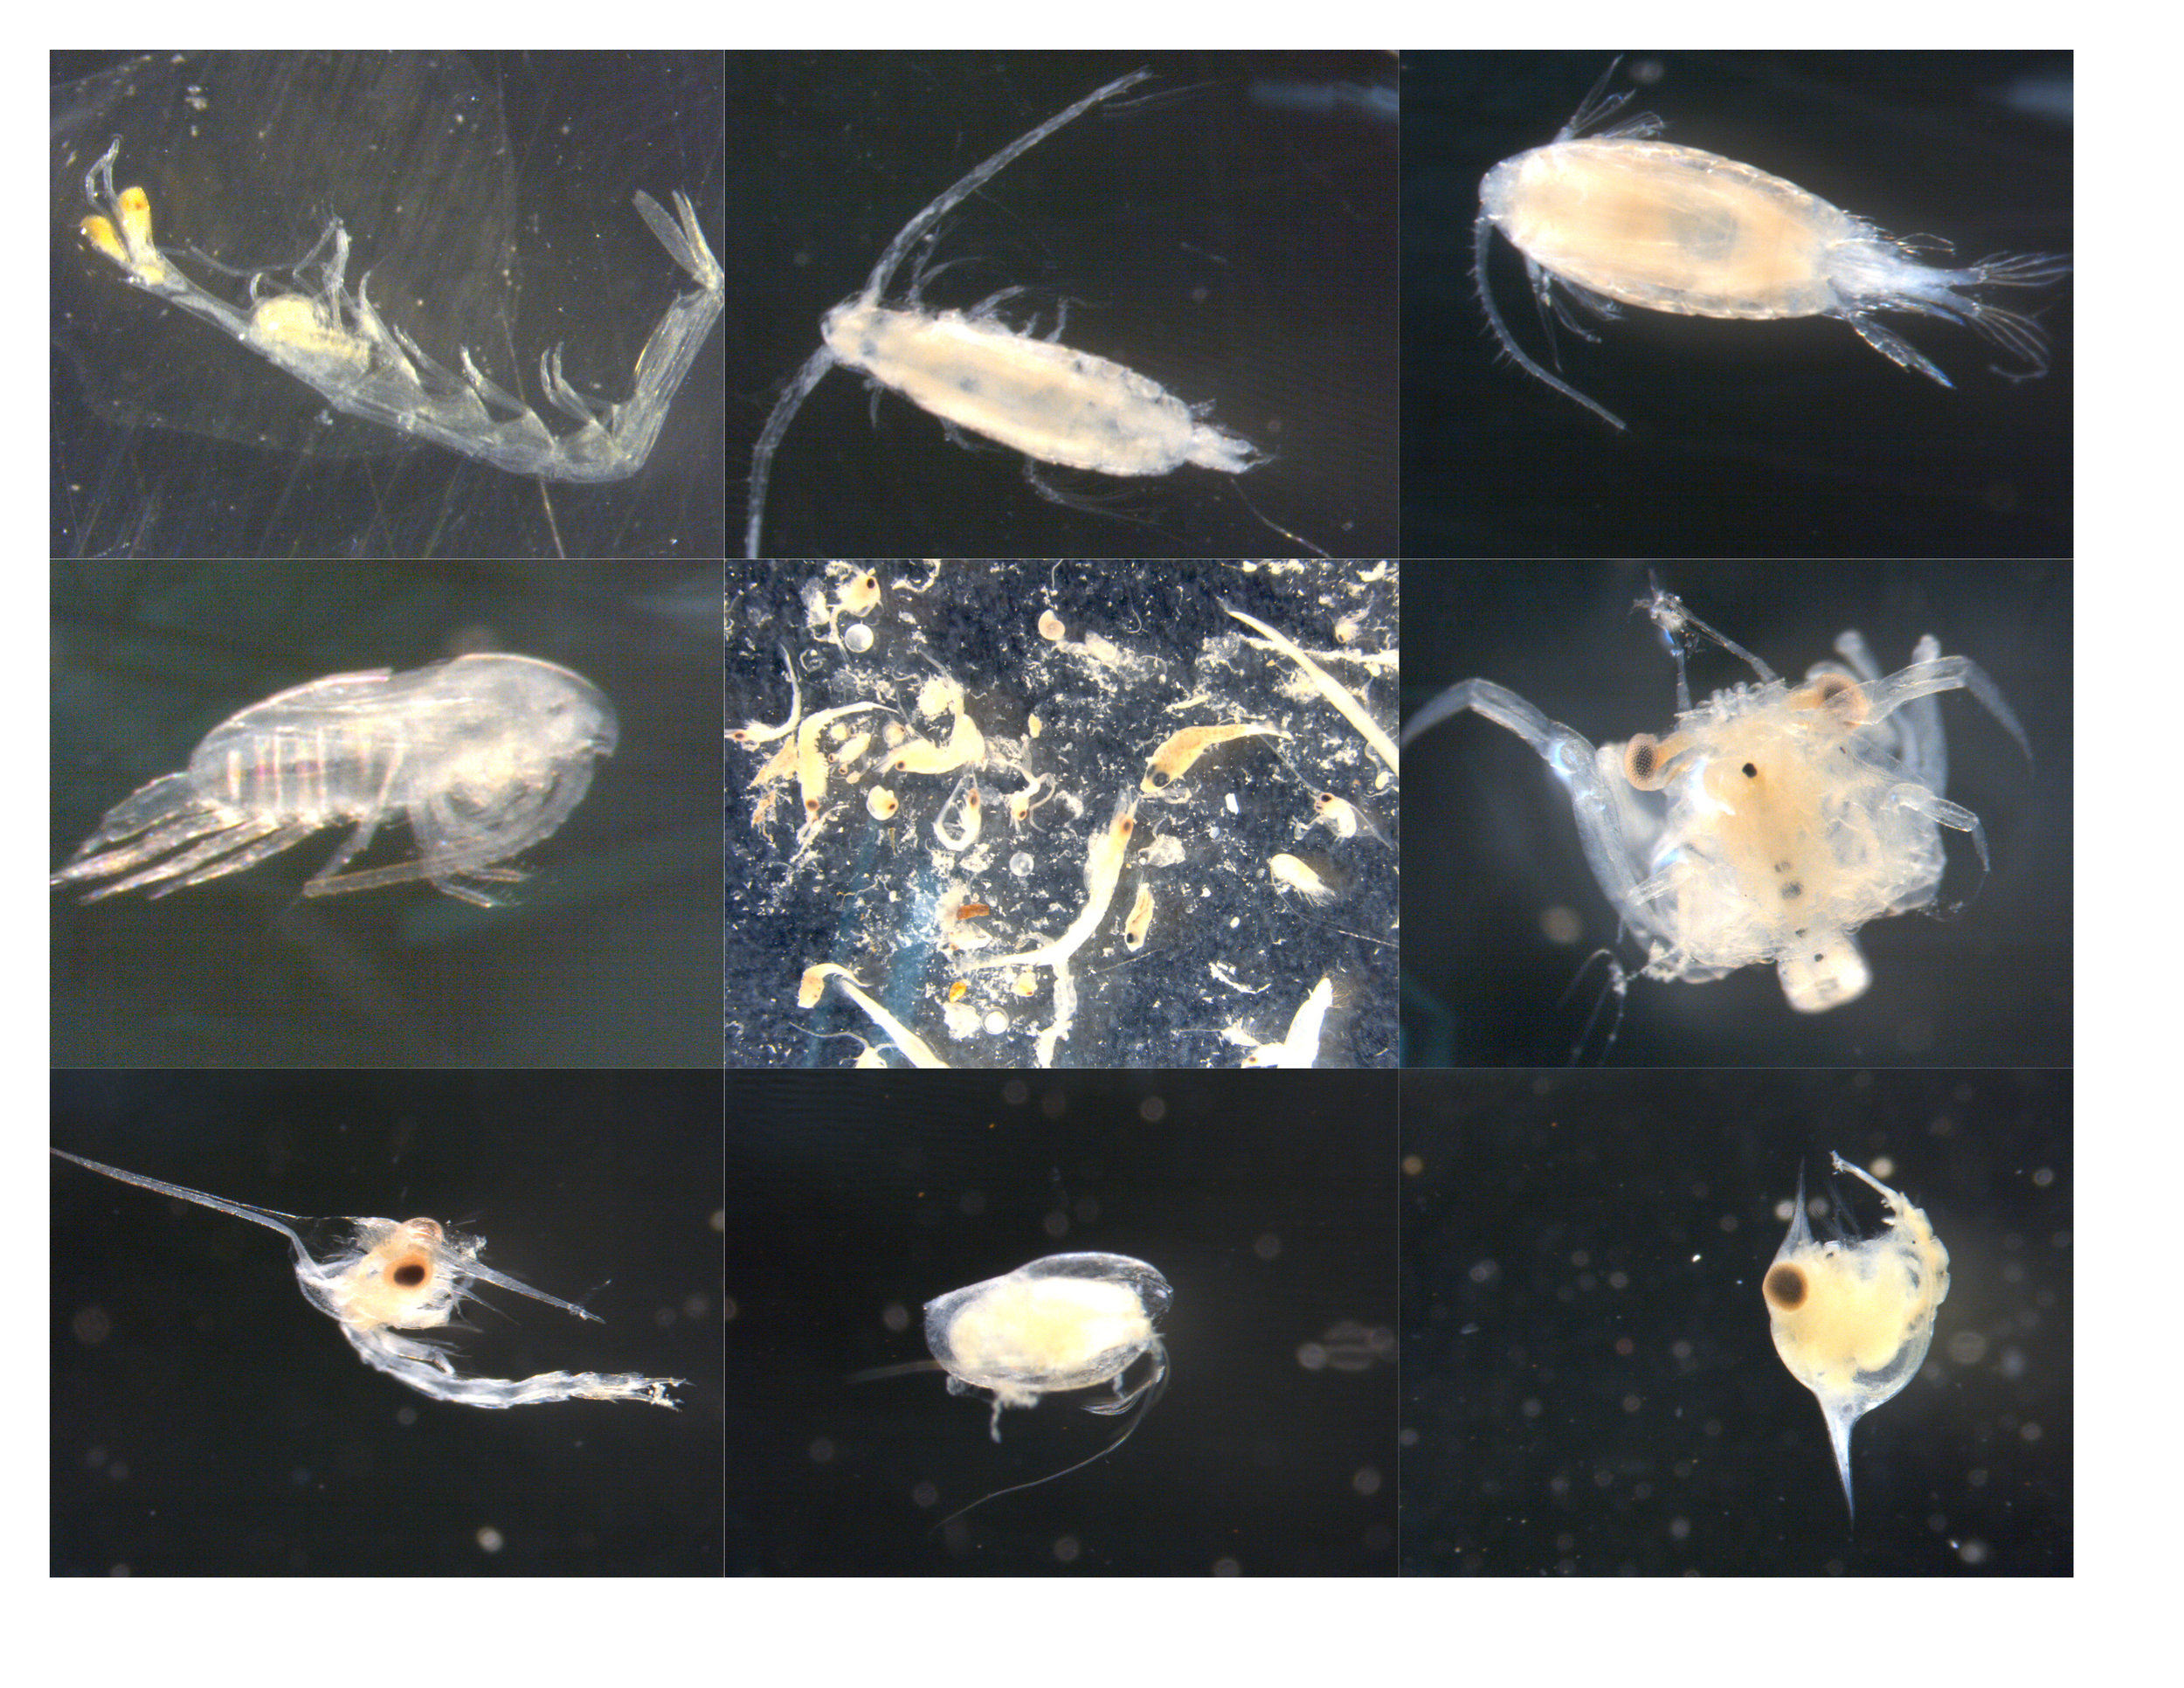 This image is a sampling of the zooplankton found in Brewers Bay, St. Thomas.